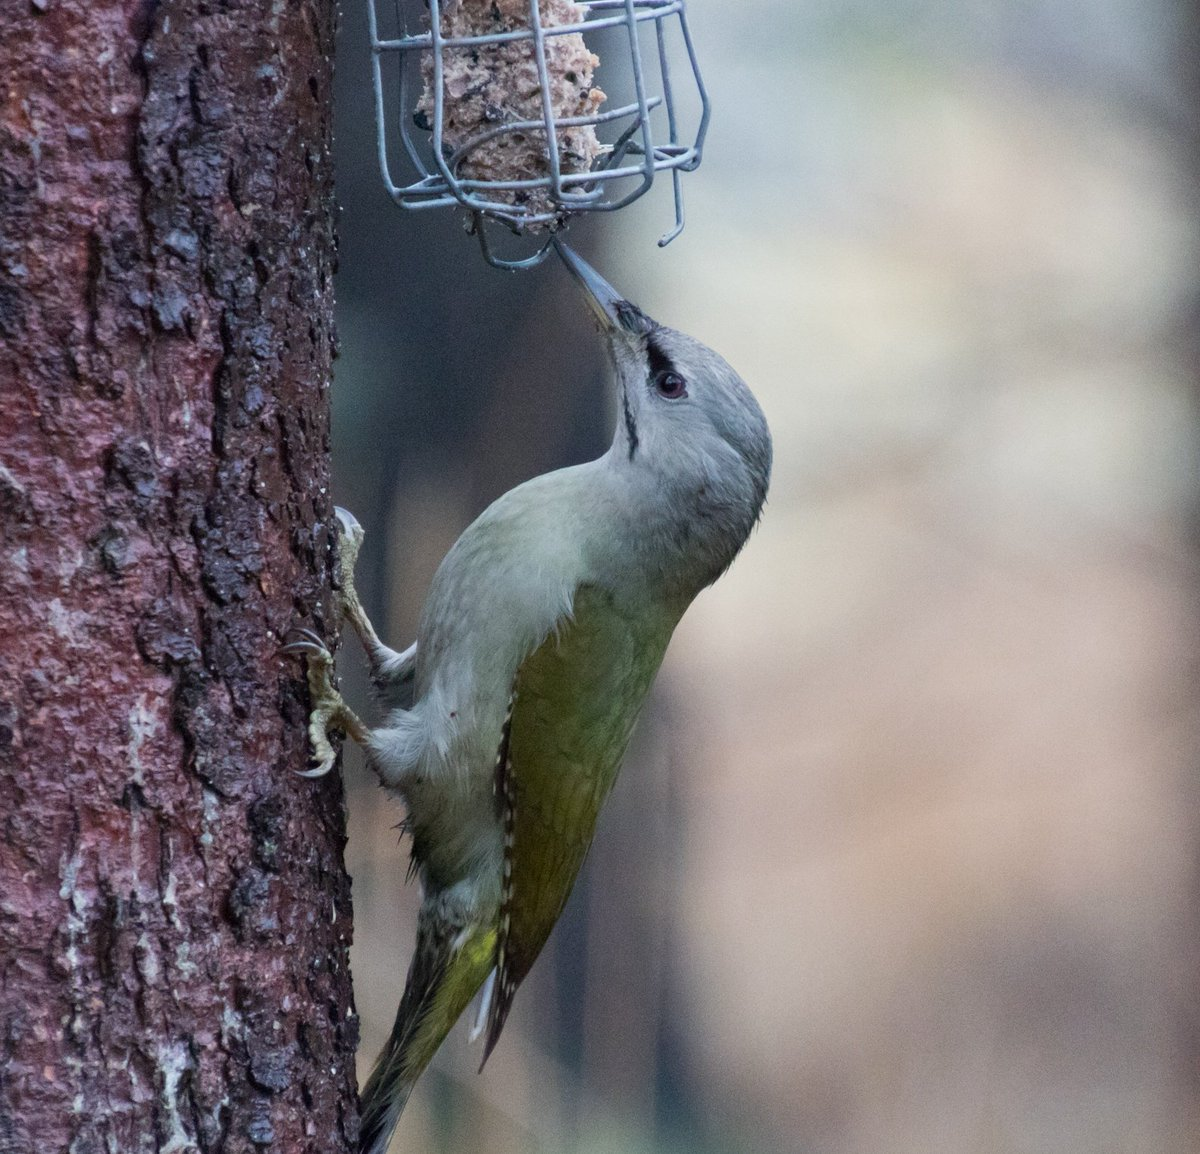 Hel Hath No Birdies Blog Post: Crimbo Run Up 2019. Winter birding with Woodpeckers and Nutcrackers. #birding #finland #nutcracker #greyheadedwoodpecker https://helhathnobirdies.blogspot.com/2019/12/crimbo-run-up-2019.html?spref=tw…pic.twitter.com/jzcBCYQhLe